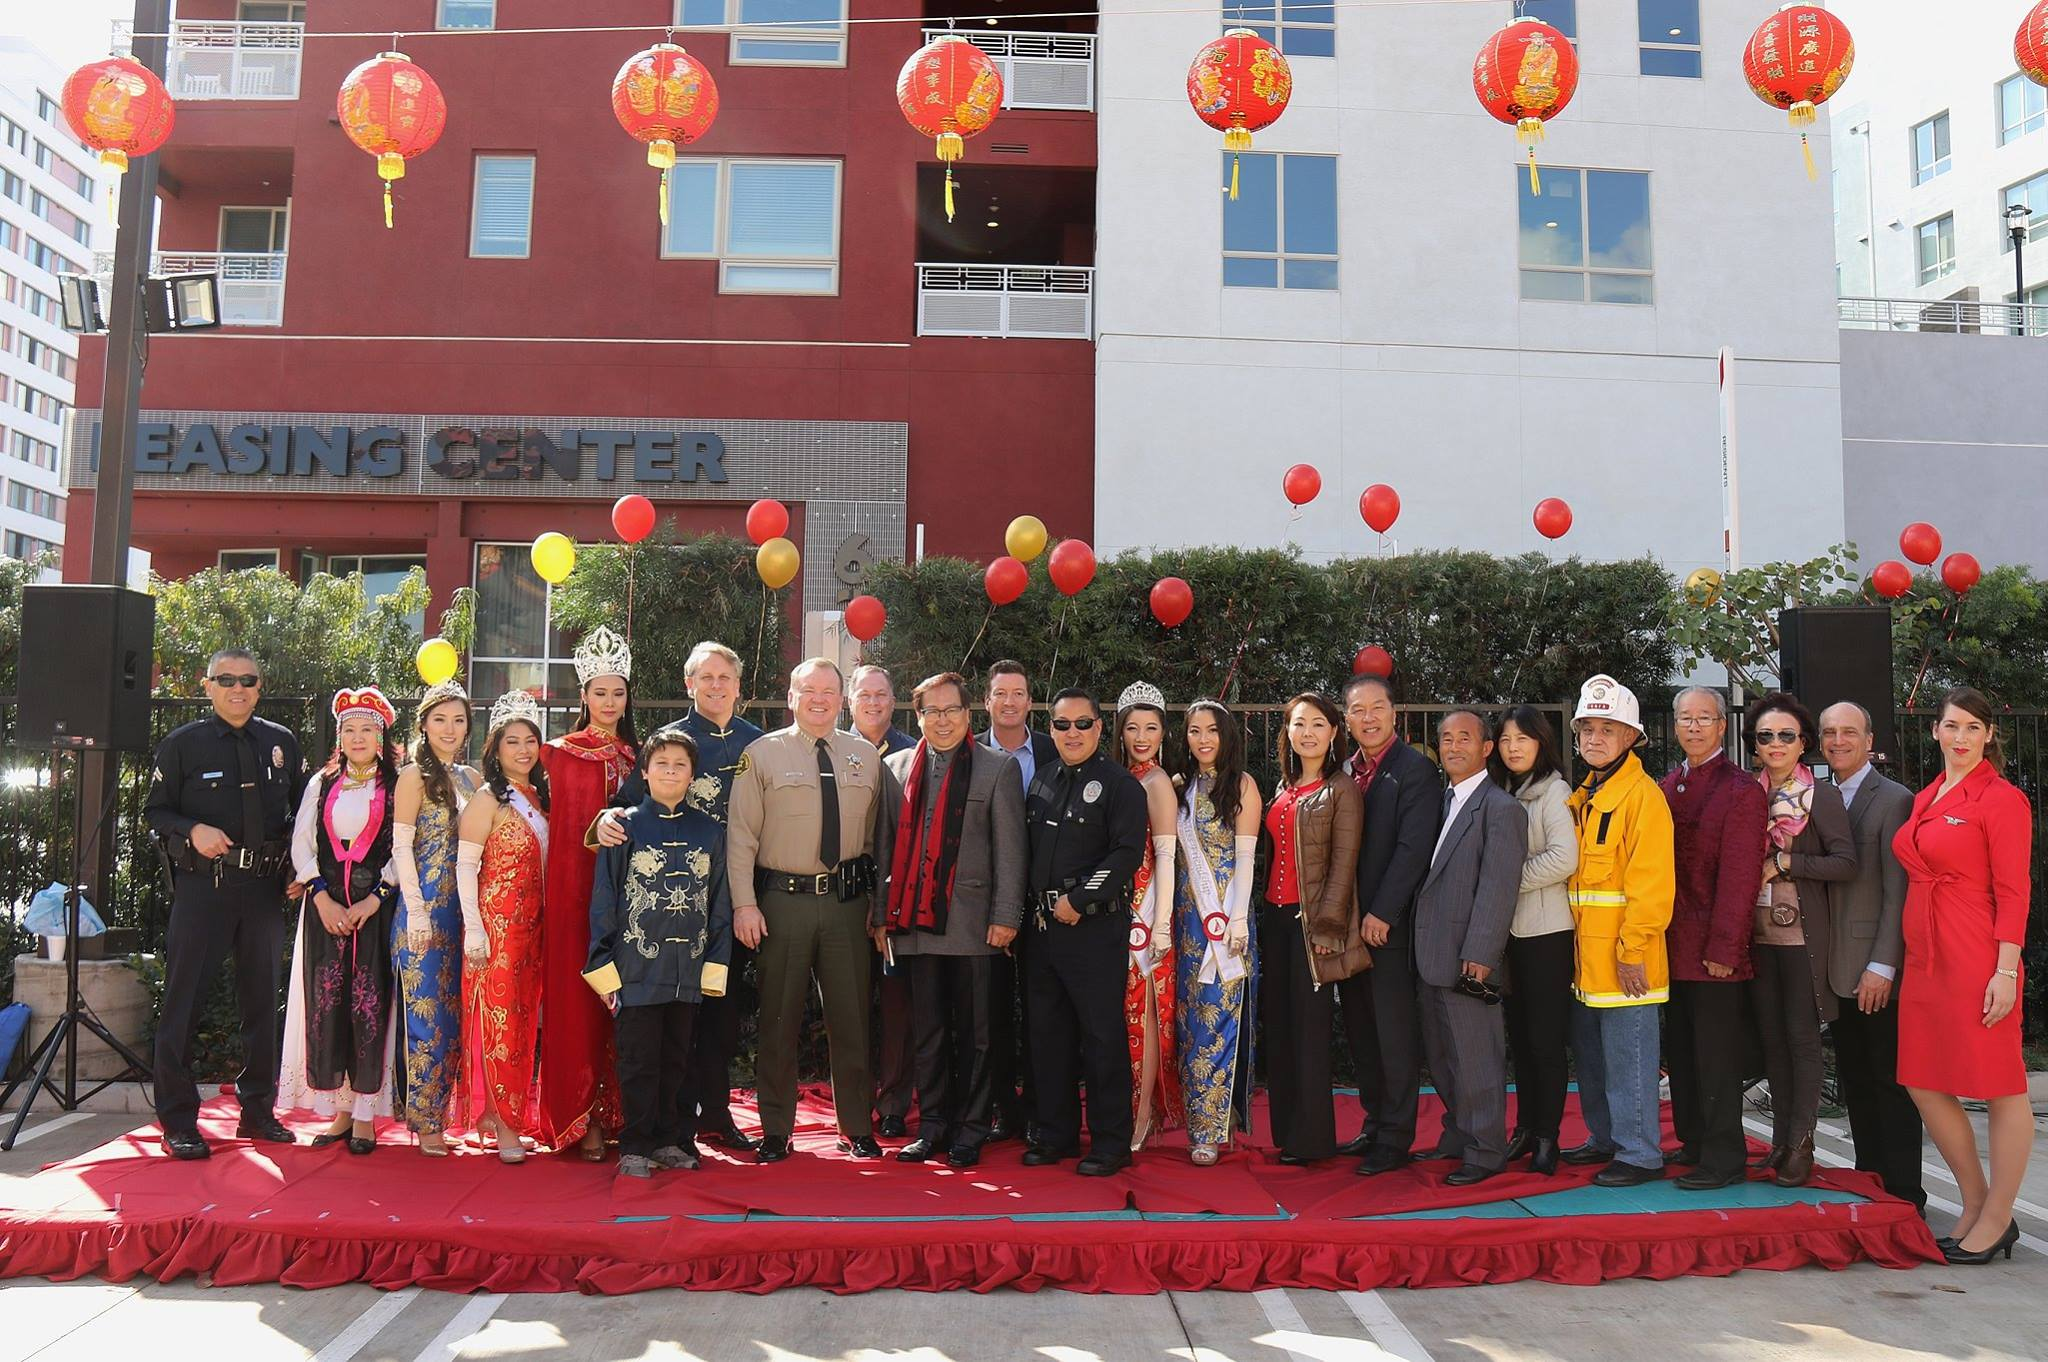 Public office holders, elected officials and community supporters at the VIP reception to kick off the 118th Golden Dragon Parade.jpg